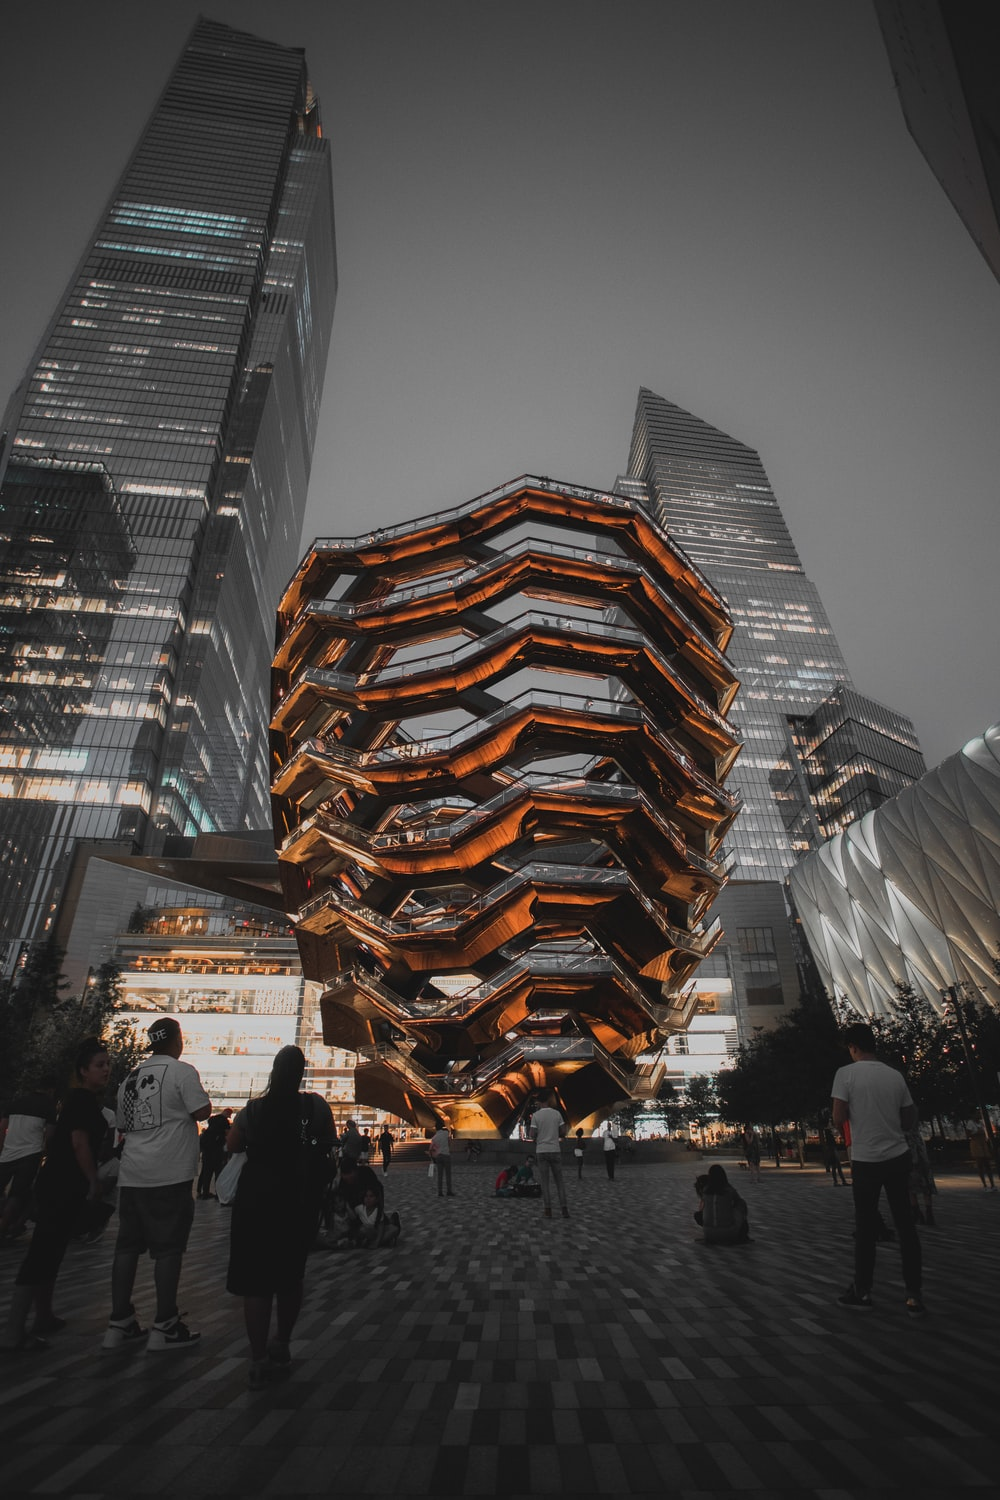 Vessel structure and landmark at New York City